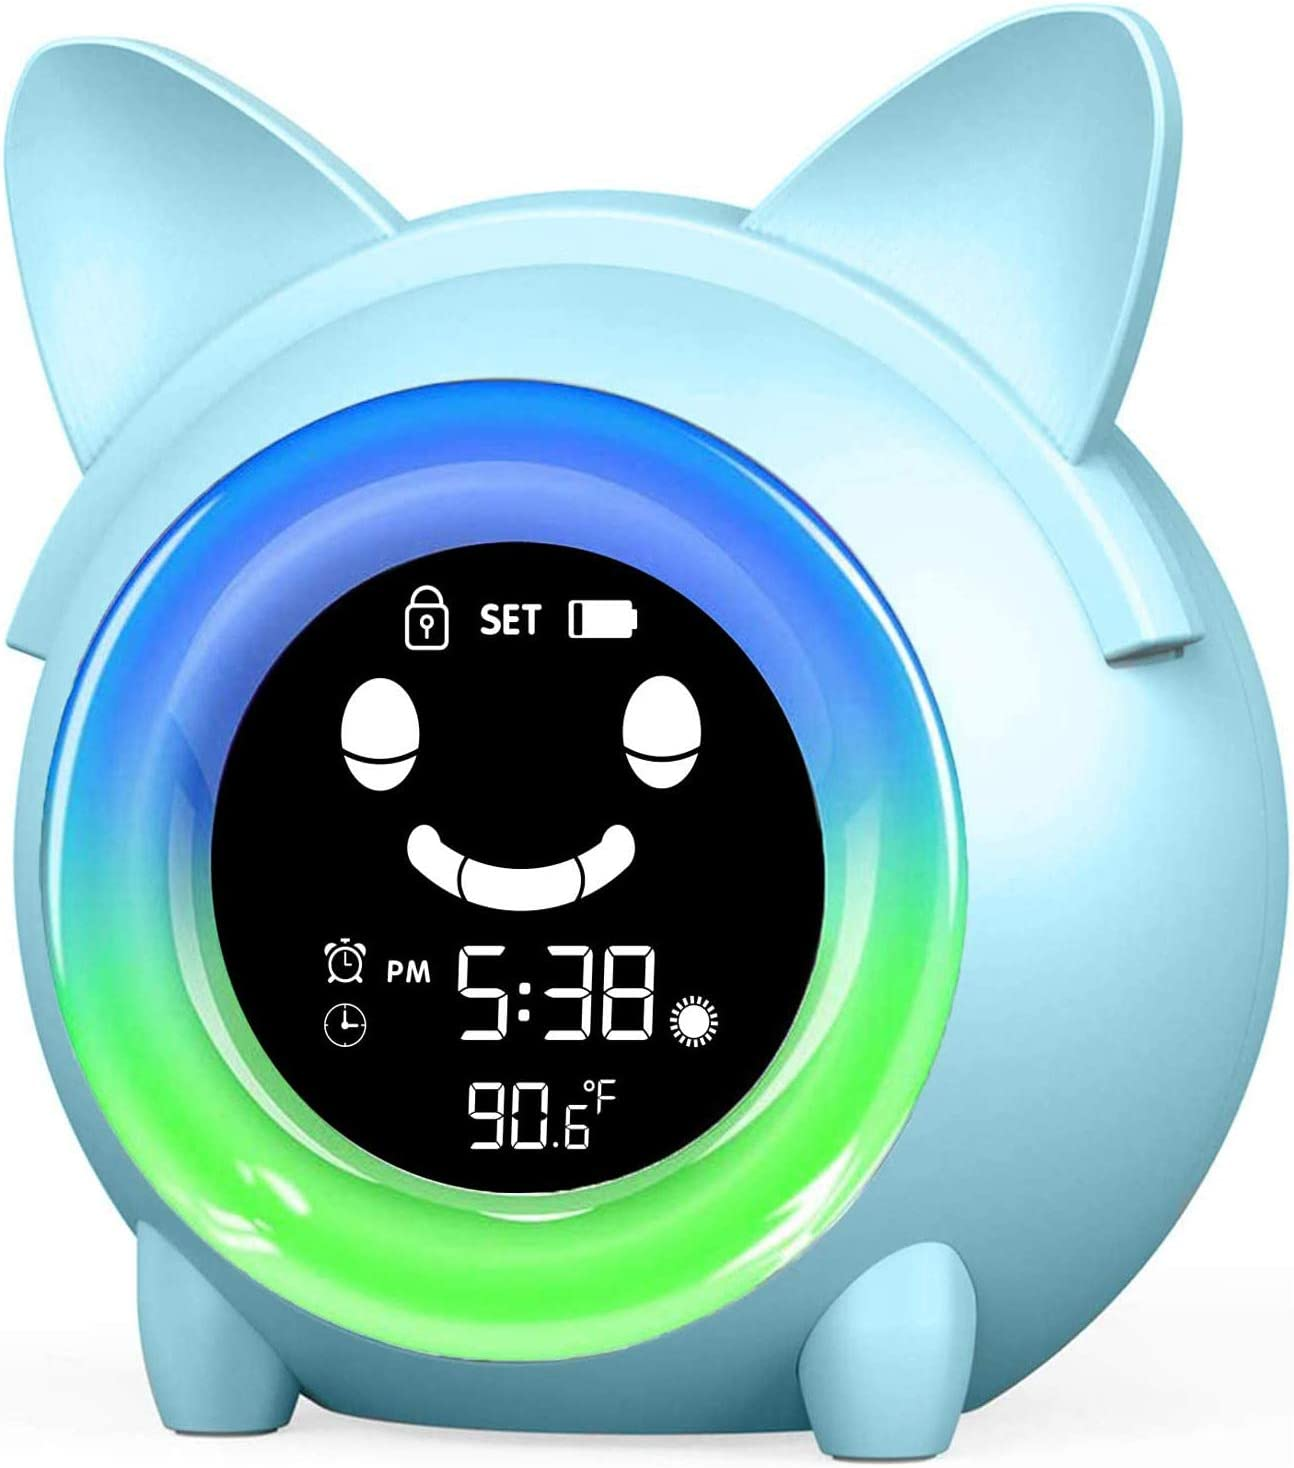 DingYue Time to Wake Reloj despertador para niños/niños Sleep Trainer/Kids Wake Up Light/Sleep Sound Machine/Colorido noche luz/termómetro interior/temporizador de siesta (gato)